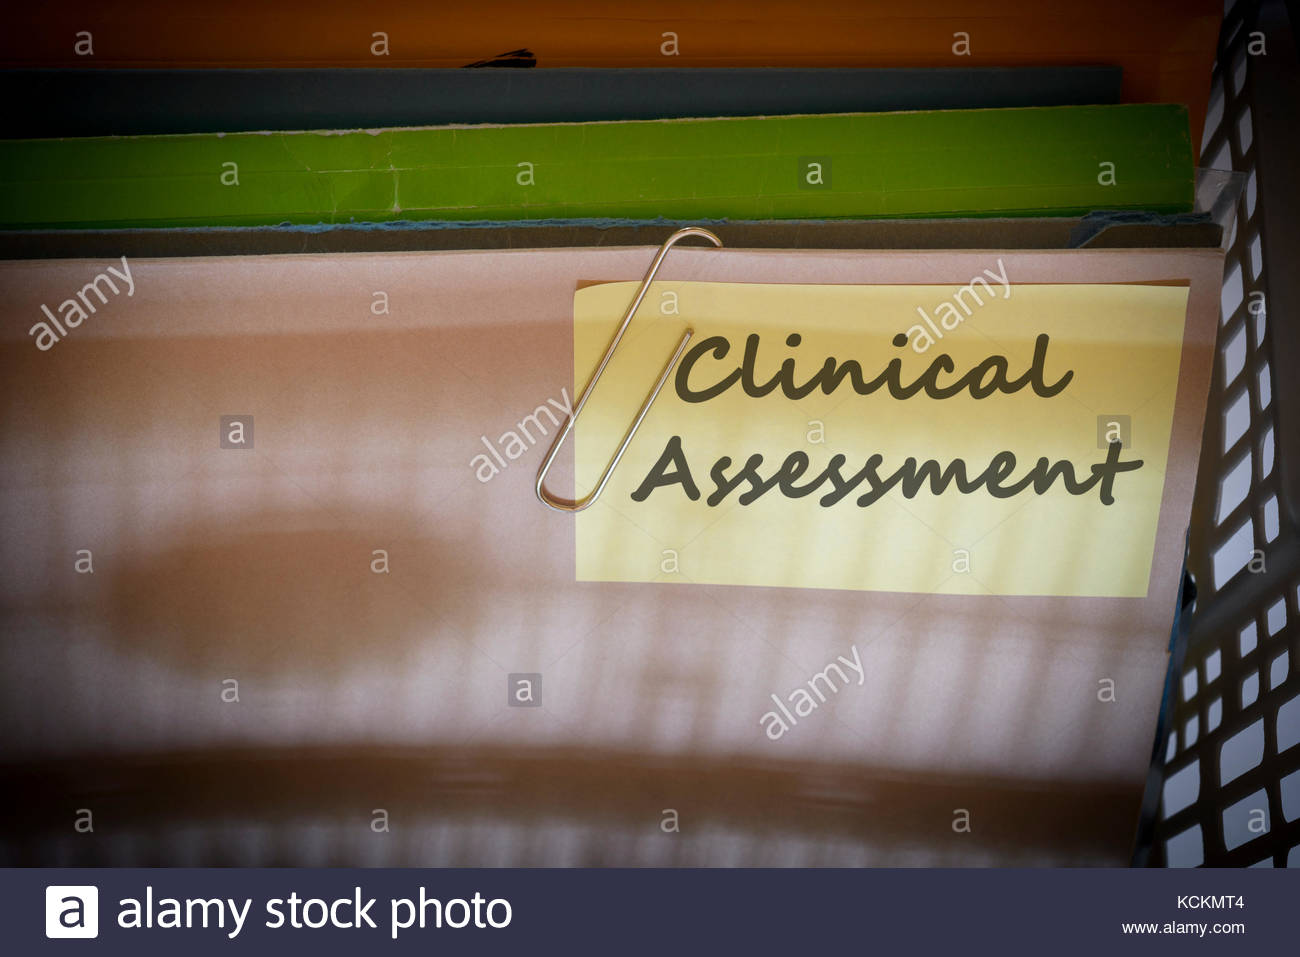 Clinical Assessment - Stock Image